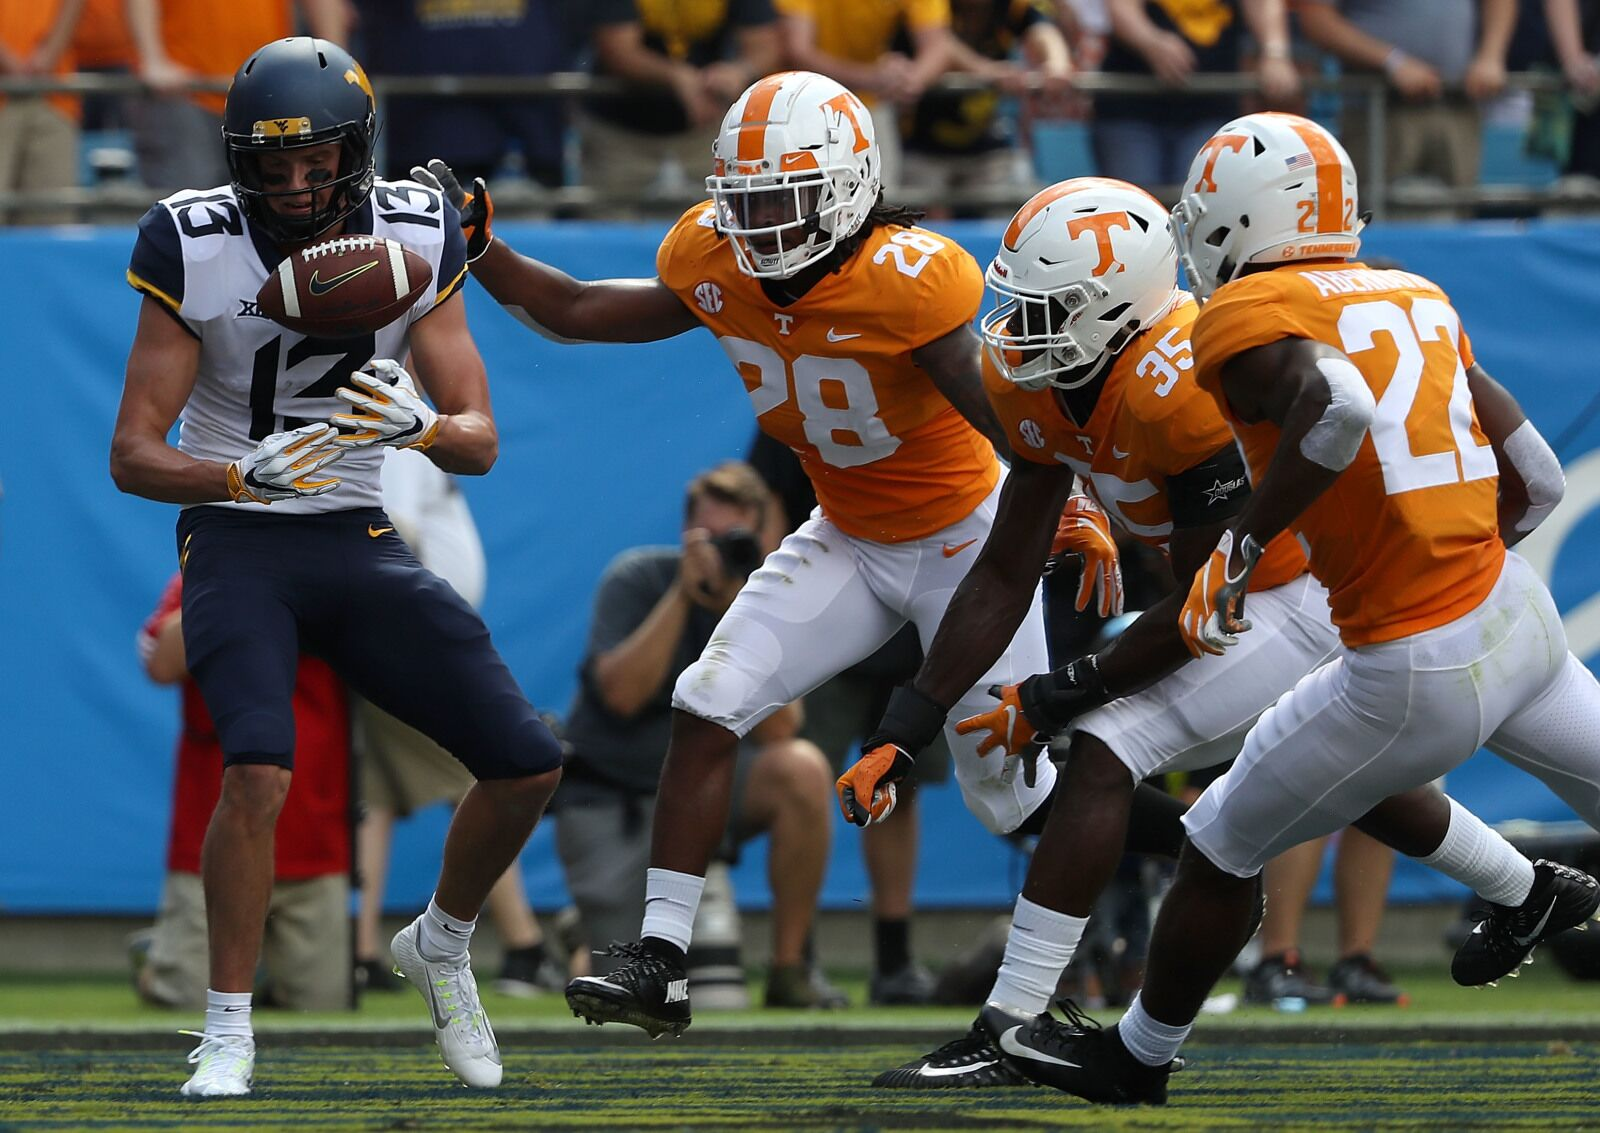 Tennessee Football Vols Lose Season Opener To West Virginia